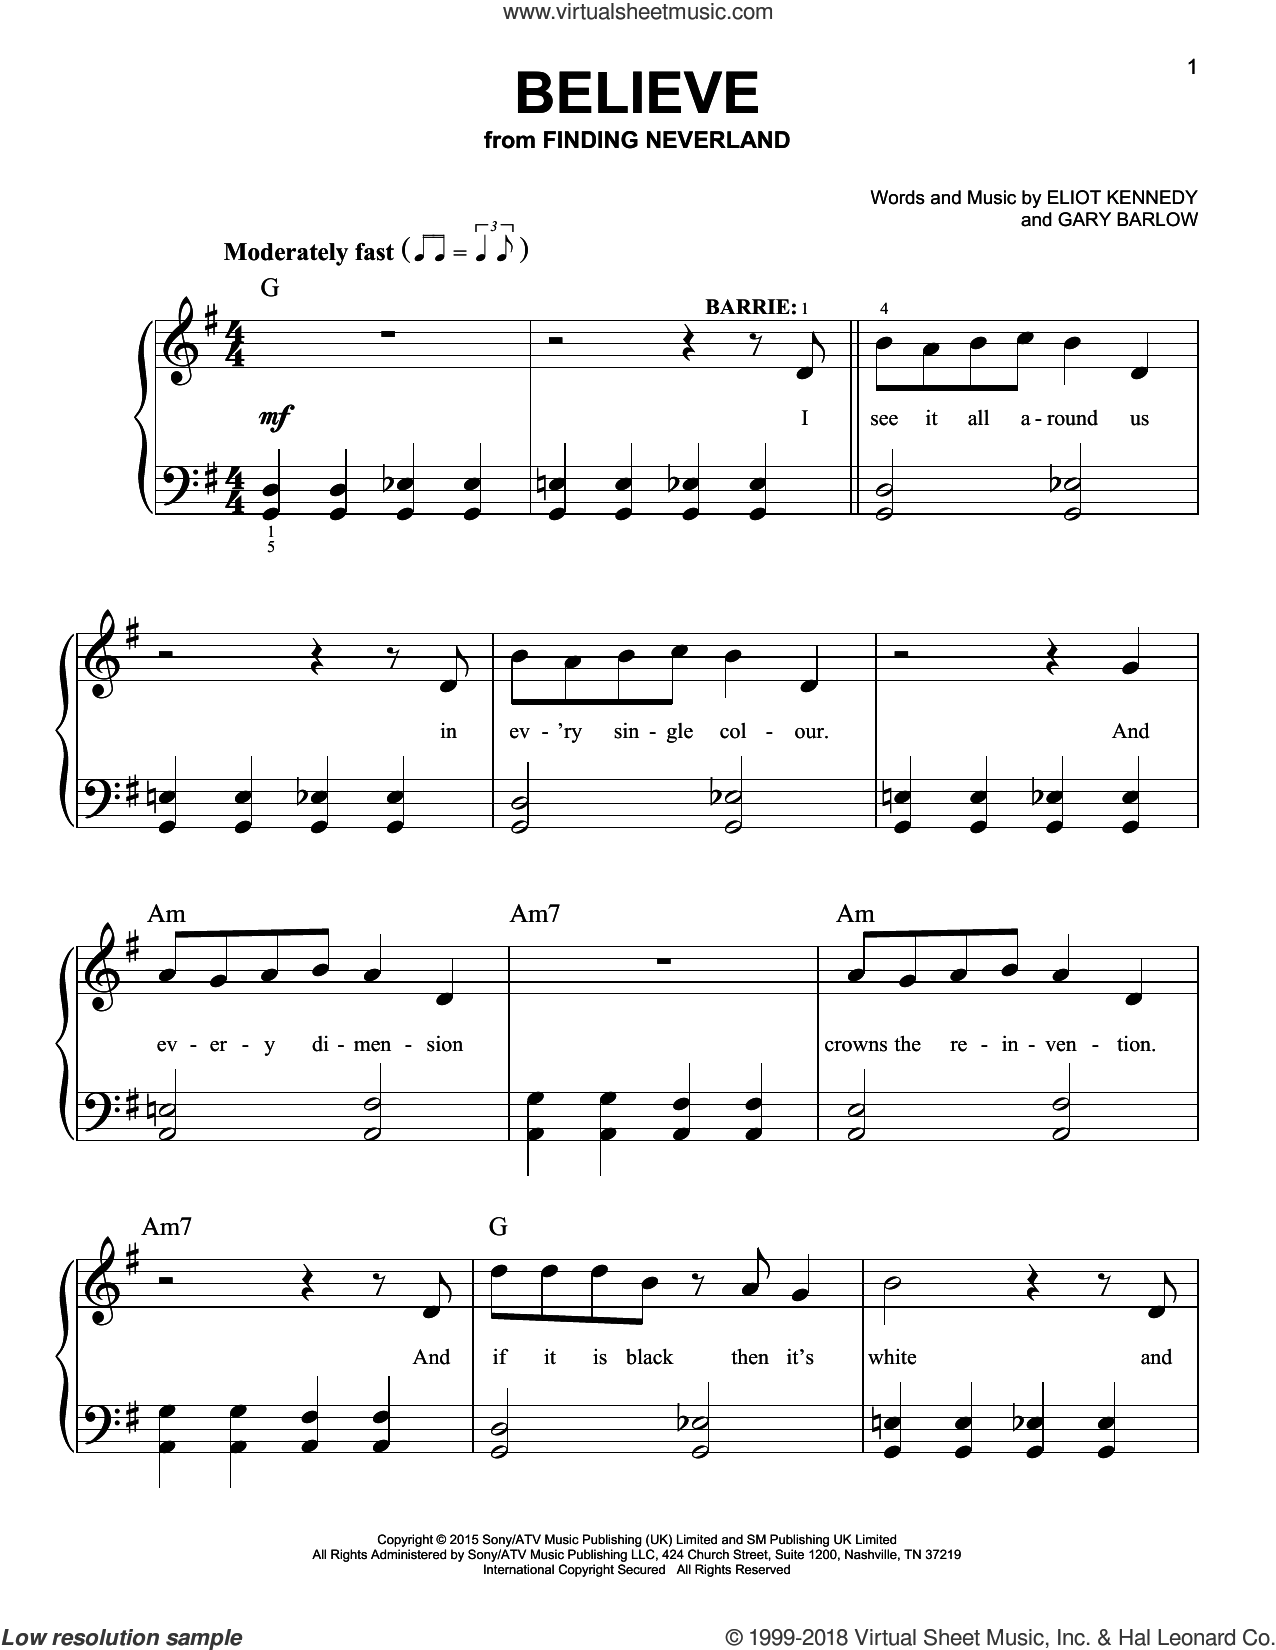 Believe sheet music for piano solo by Gary Barlow, Gary Barlow & Eliot Kennedy and Eliot Kennedy. Score Image Preview.